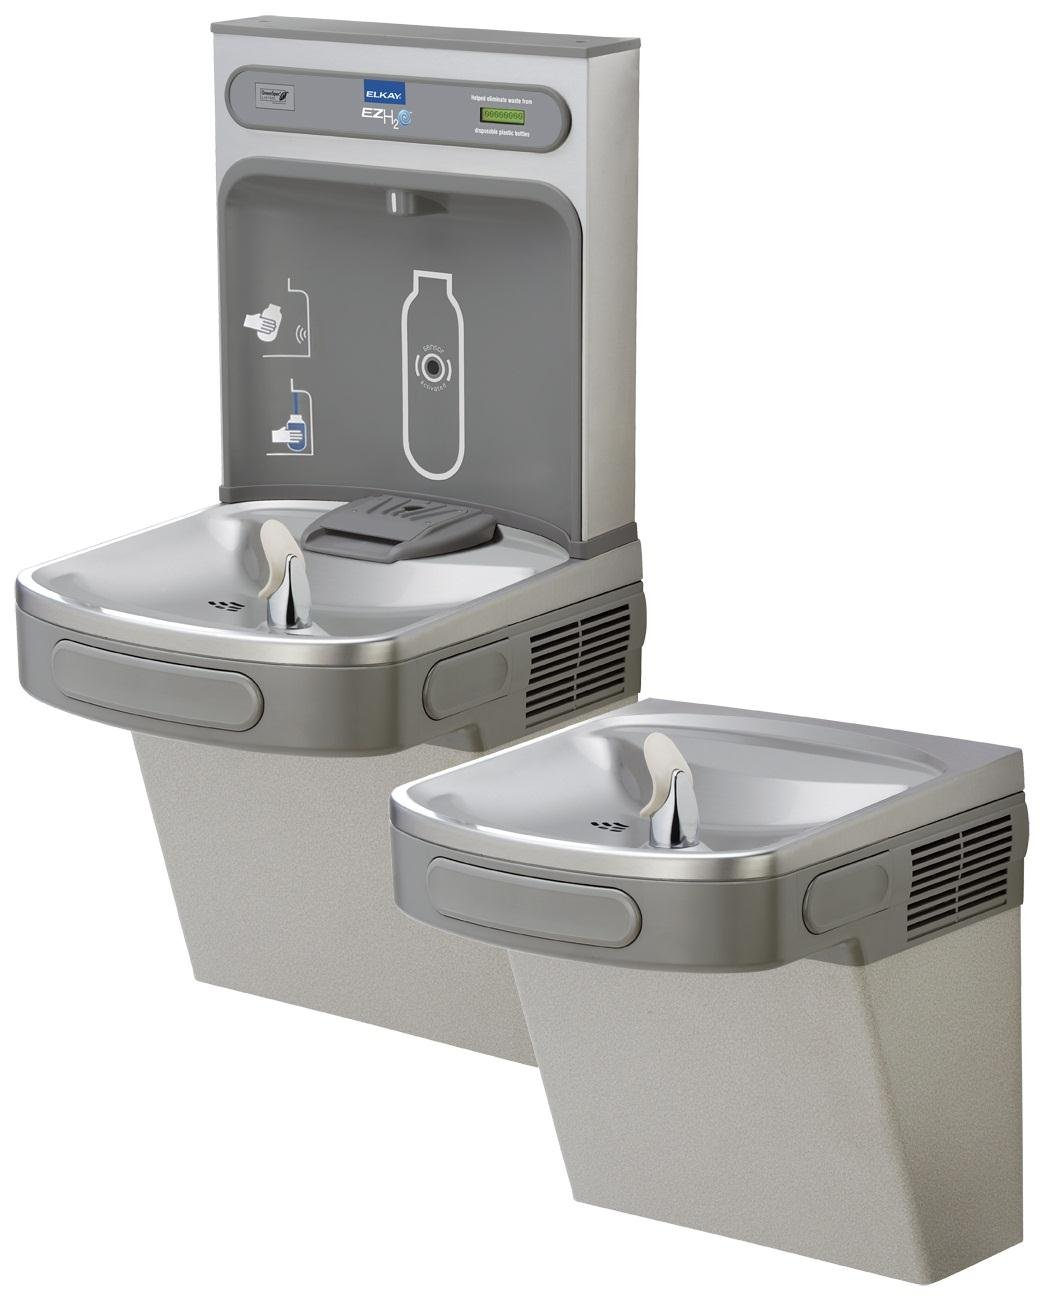 EZH2O ADA Compliant 2 Station Drinking Fountain with Bottle Filling Station  - Water Dispensers - Amazon.com